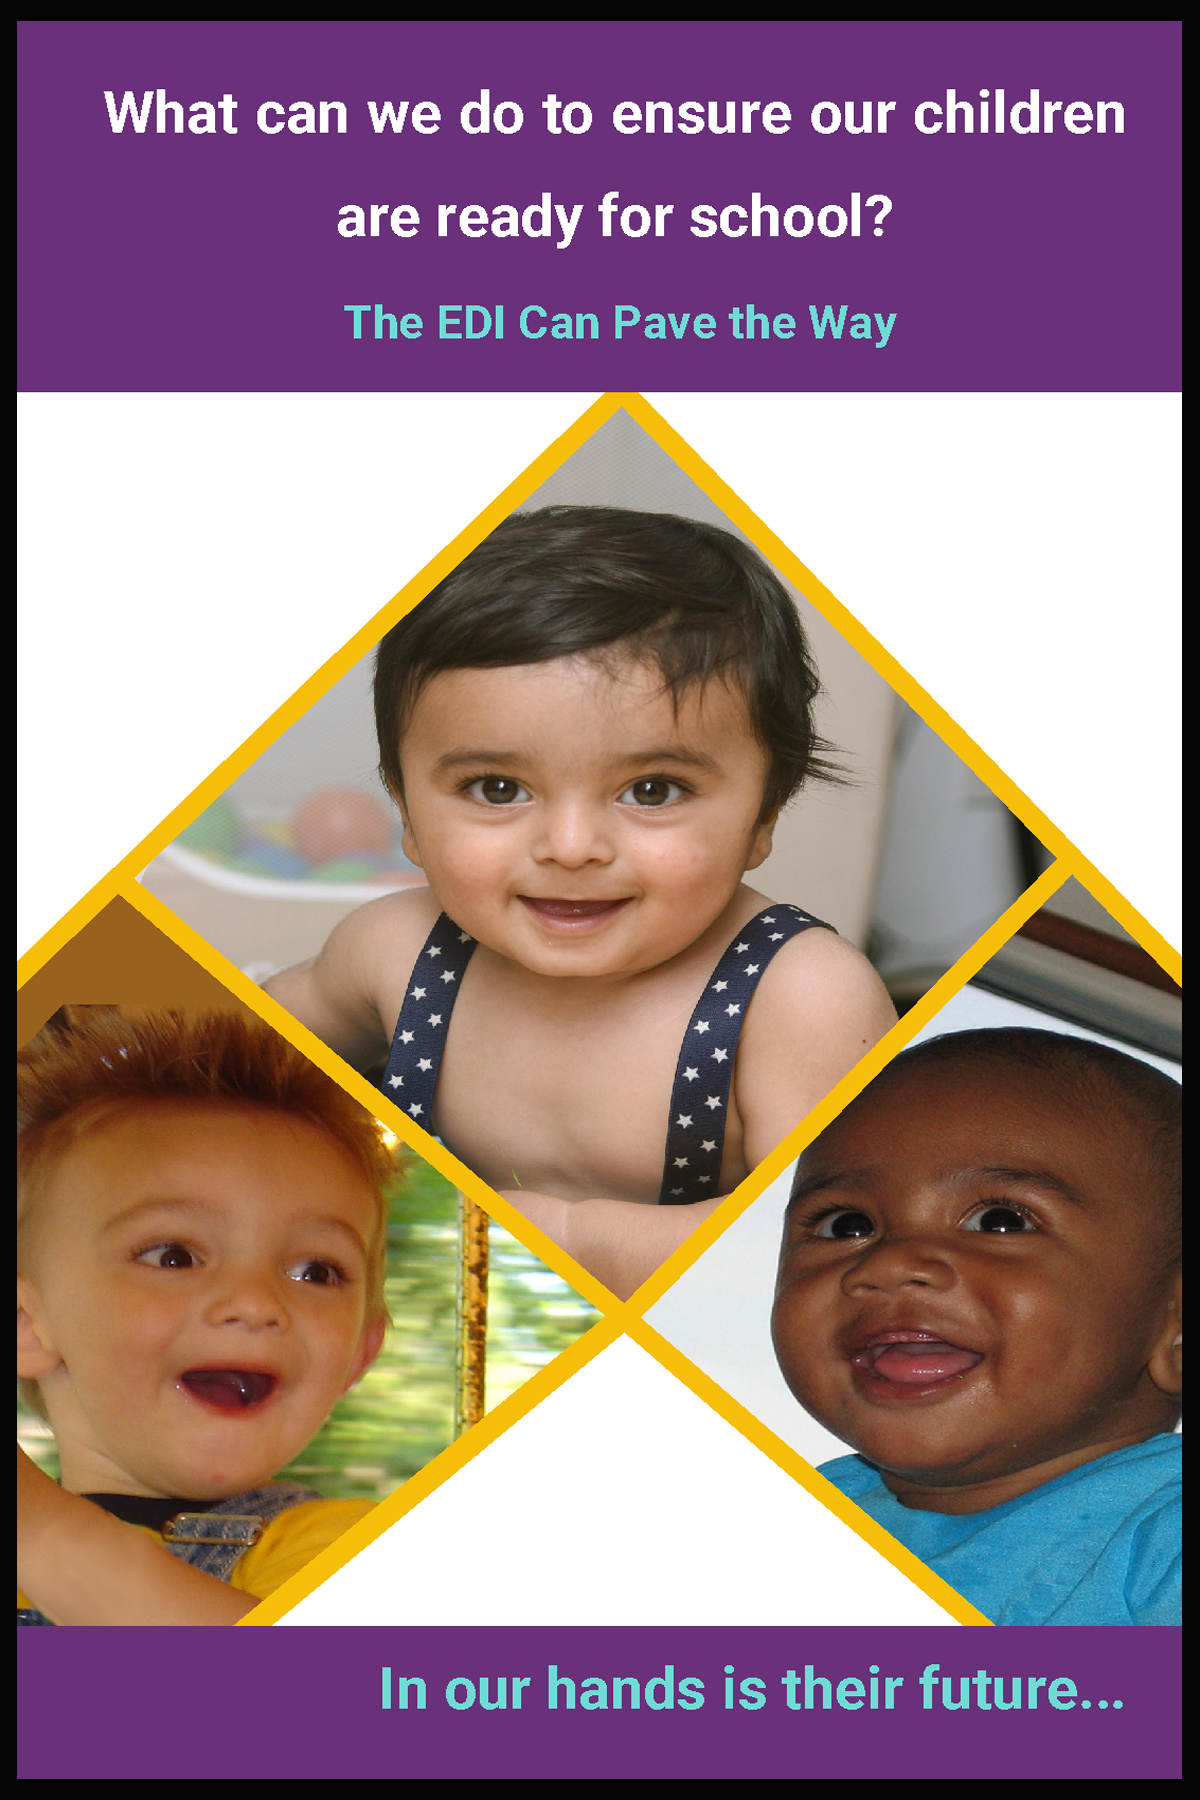 This booklet provides an overall view of kindergarten readiness in Spartanburg County.